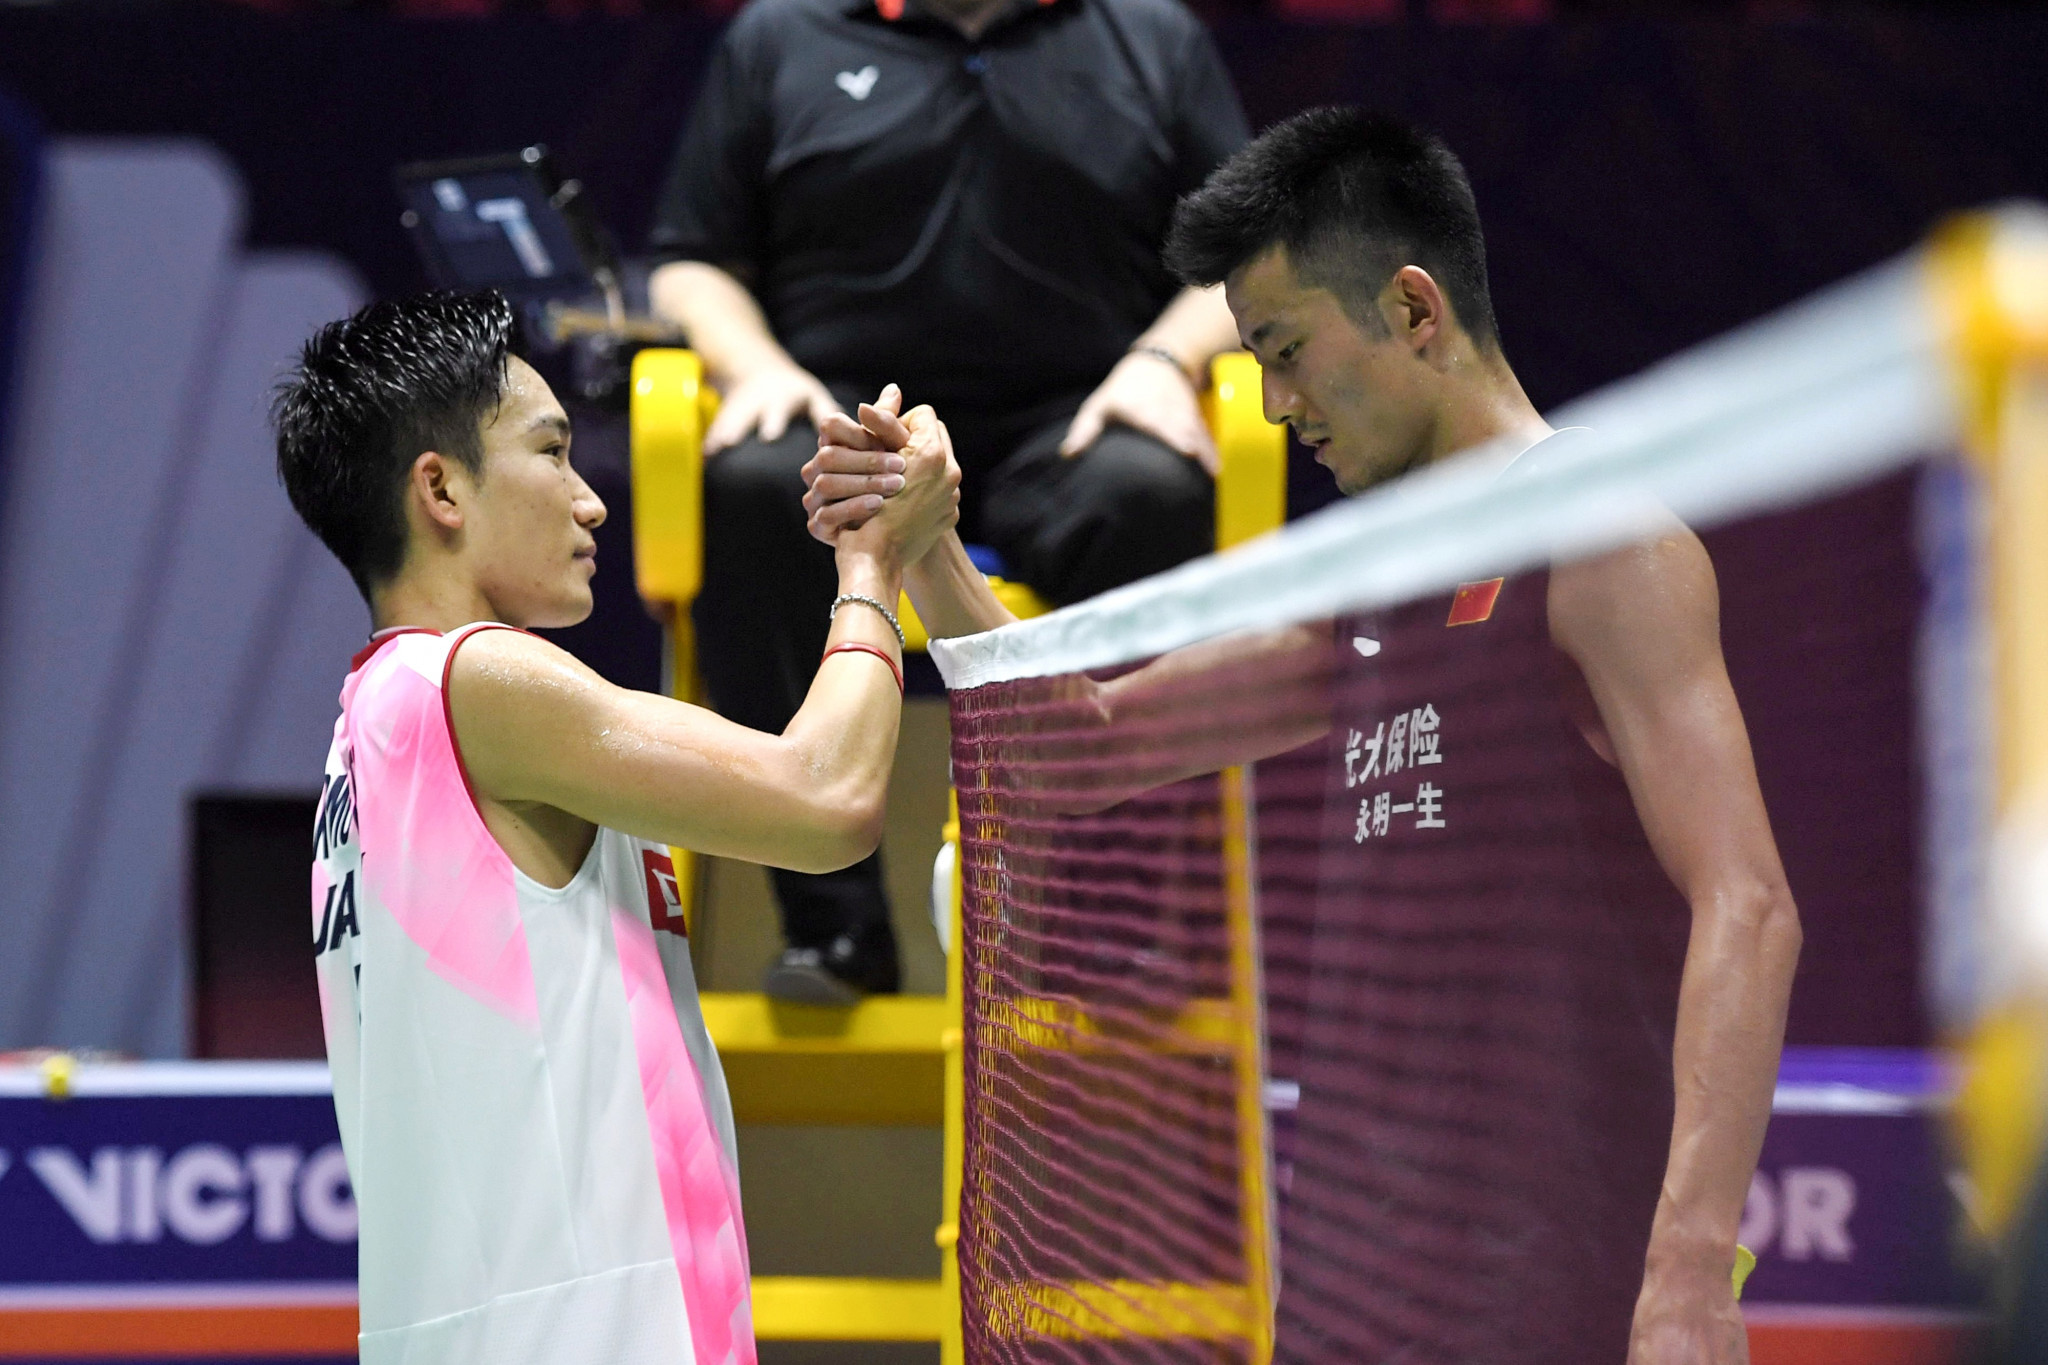 Momota and Chen to contest men's singles final at BWF Denmark Open